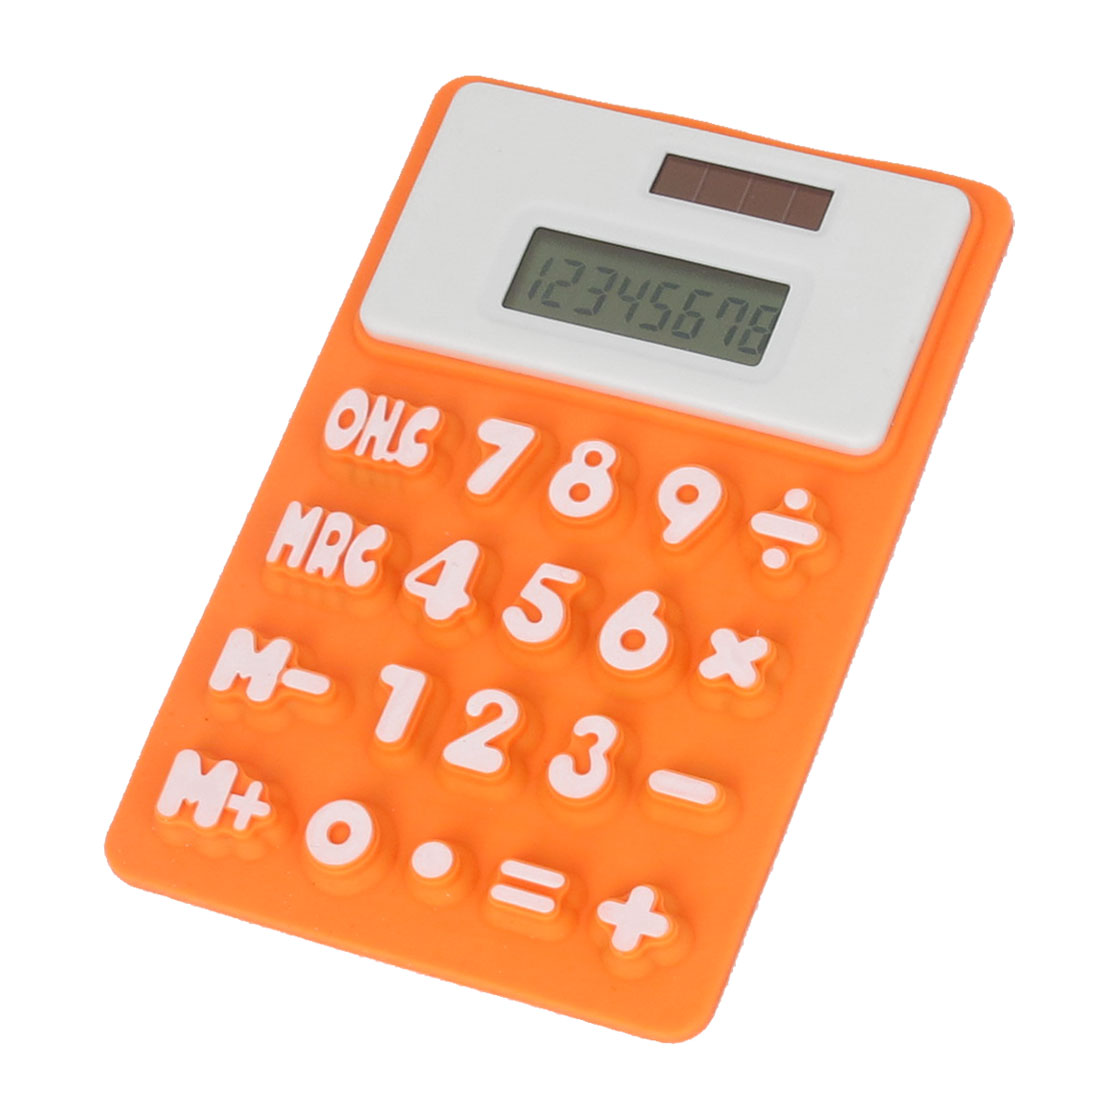 Home Office Fridge Magnetic Sticker Silicone Calculator Orange White